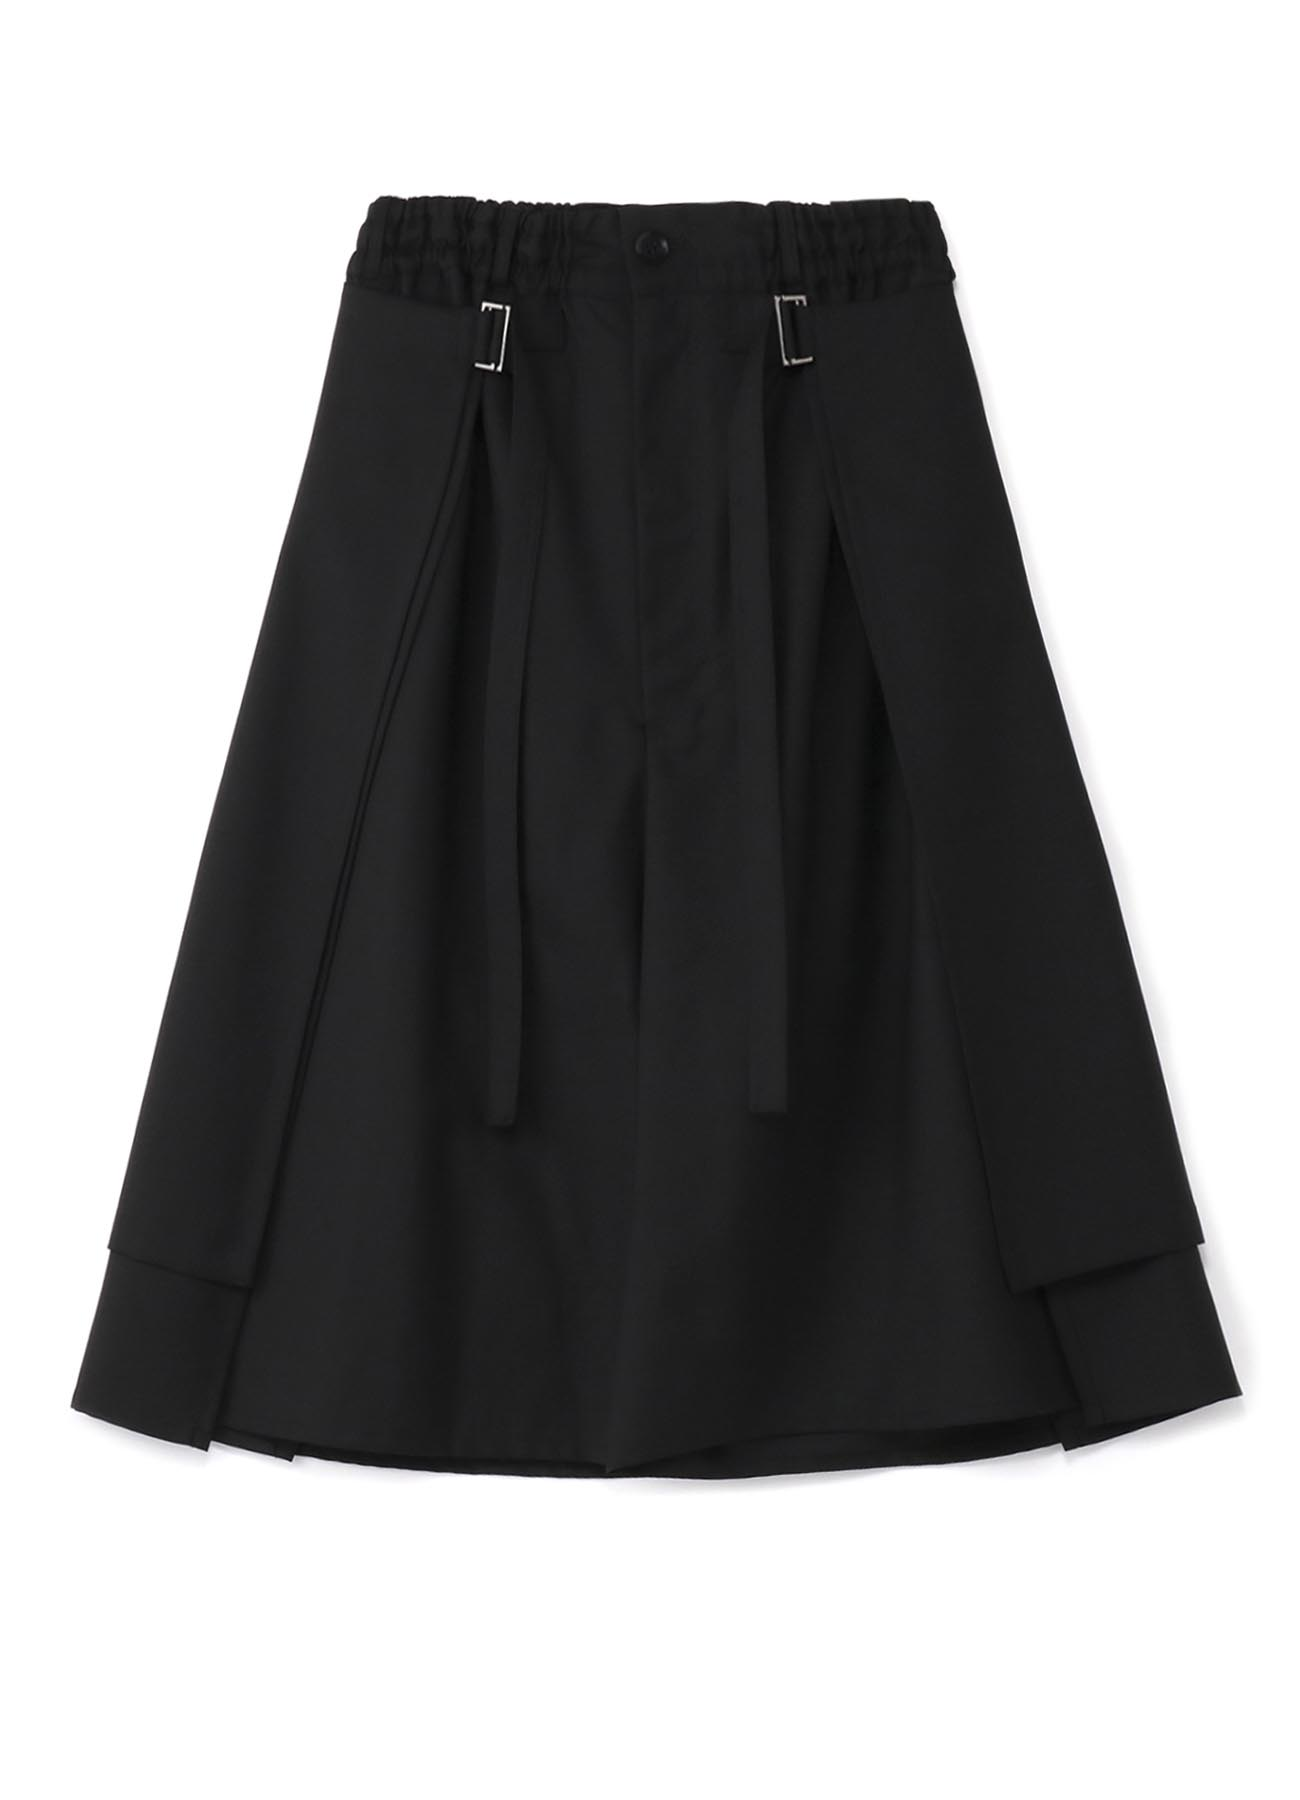 T/W? gaberdine Round and Round Skirt Pants